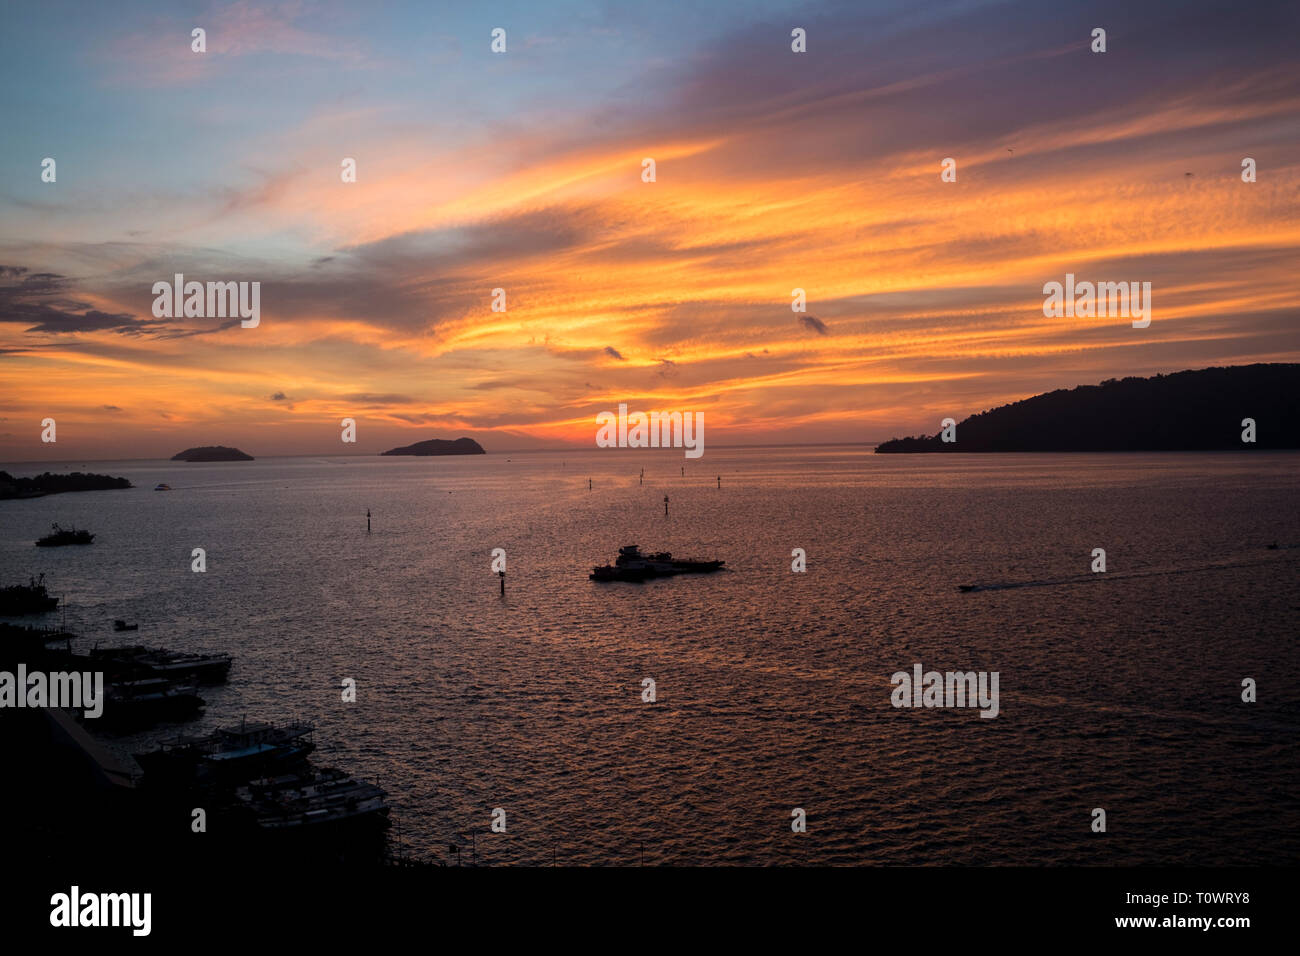 A stunning, beautiful, orange sunset over the South China Sea in Kota Kinabalu, Sabah, Borneo, Malaysia. - Stock Image